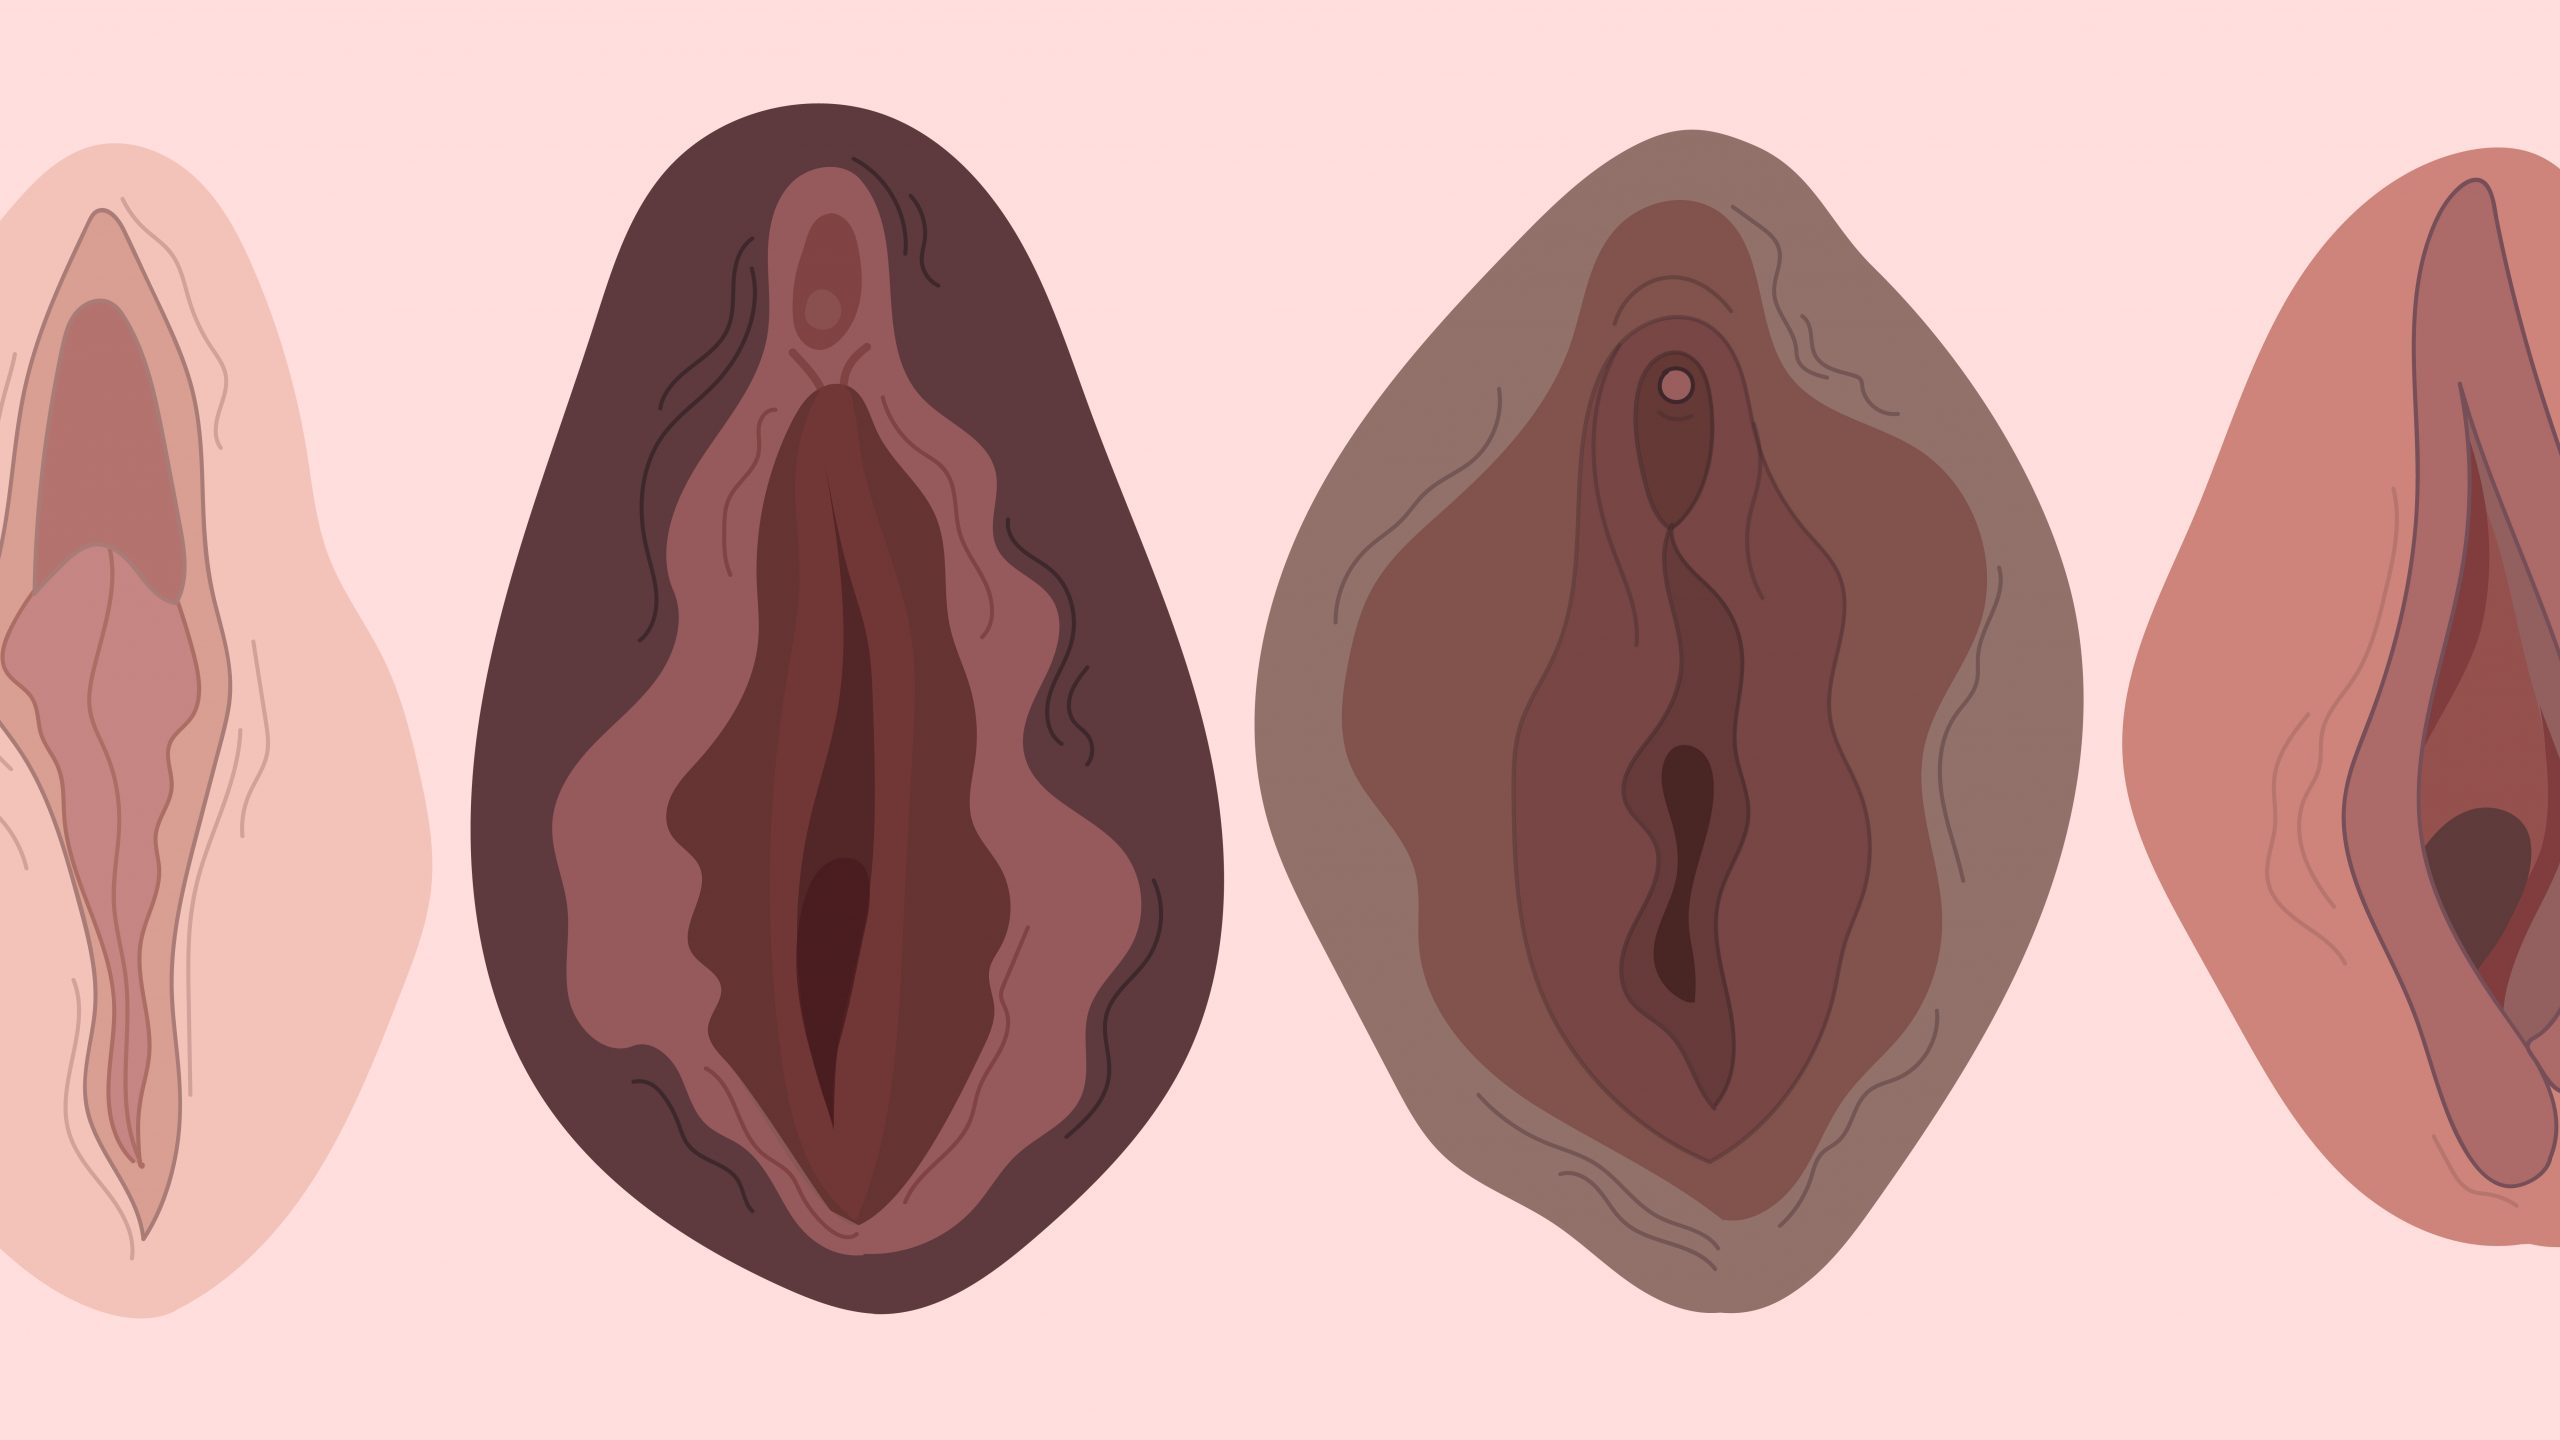 a variety of vulvas